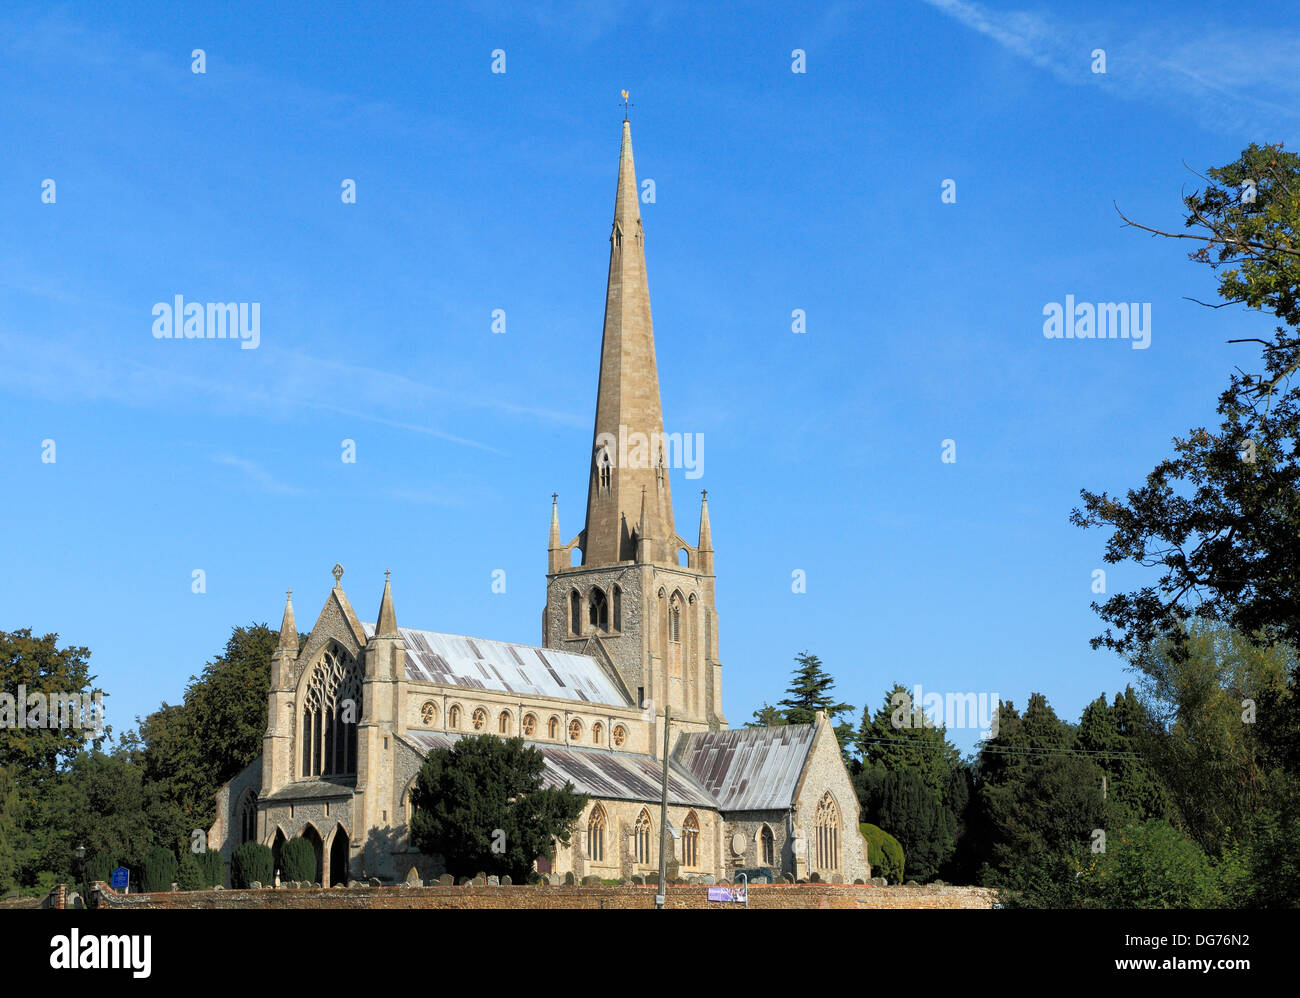 Snettisham, Norfolk, parish church with spire English medieval village churches spires England UK - Stock Image